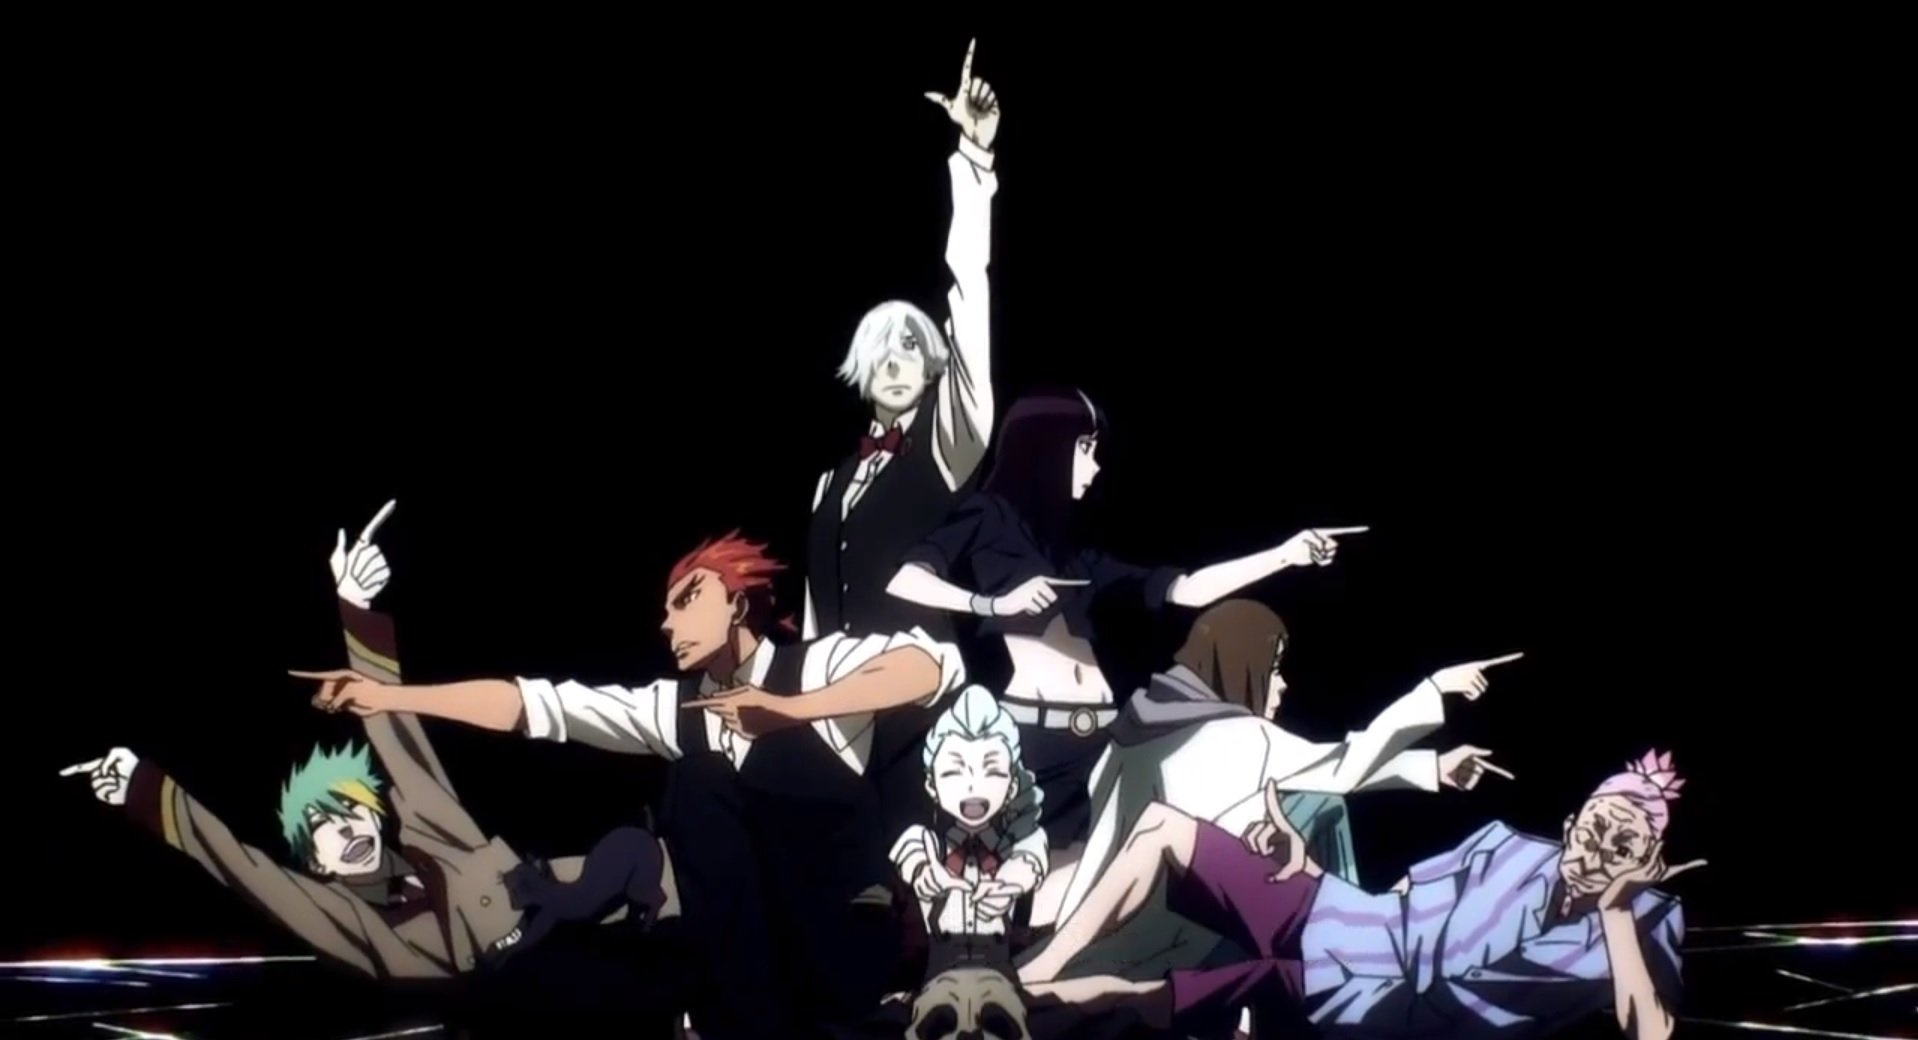 Anime Wallpapers Death Parade HD 4K Download For Mobile iPhone & PC